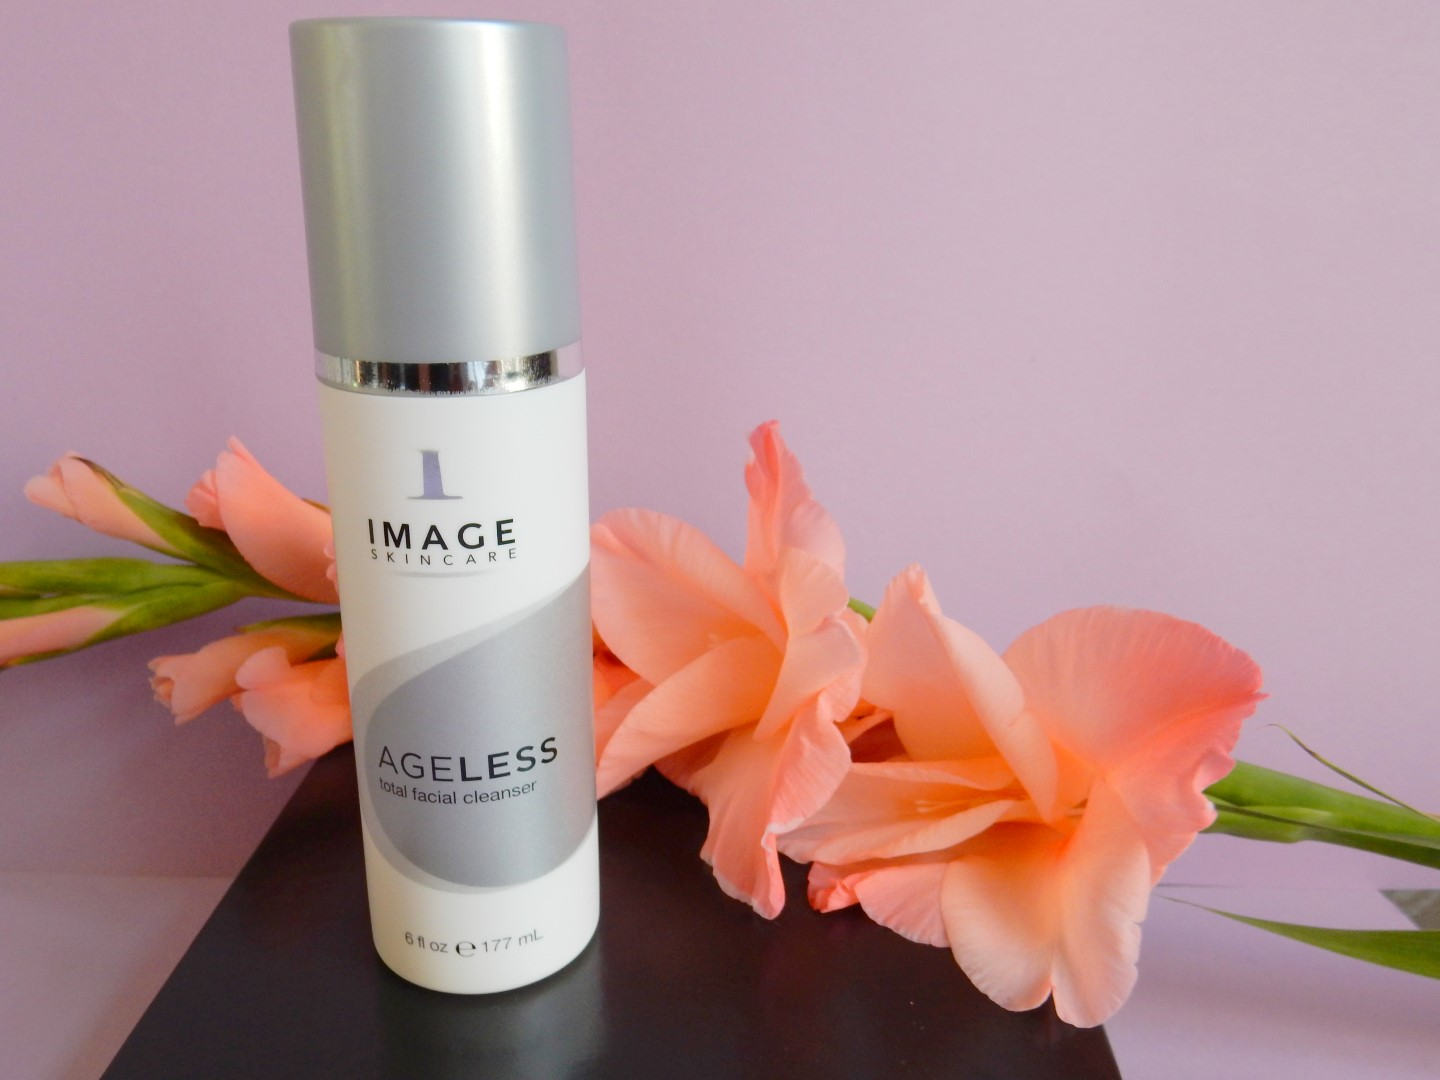 Ageless Total Facial Cleanser Review